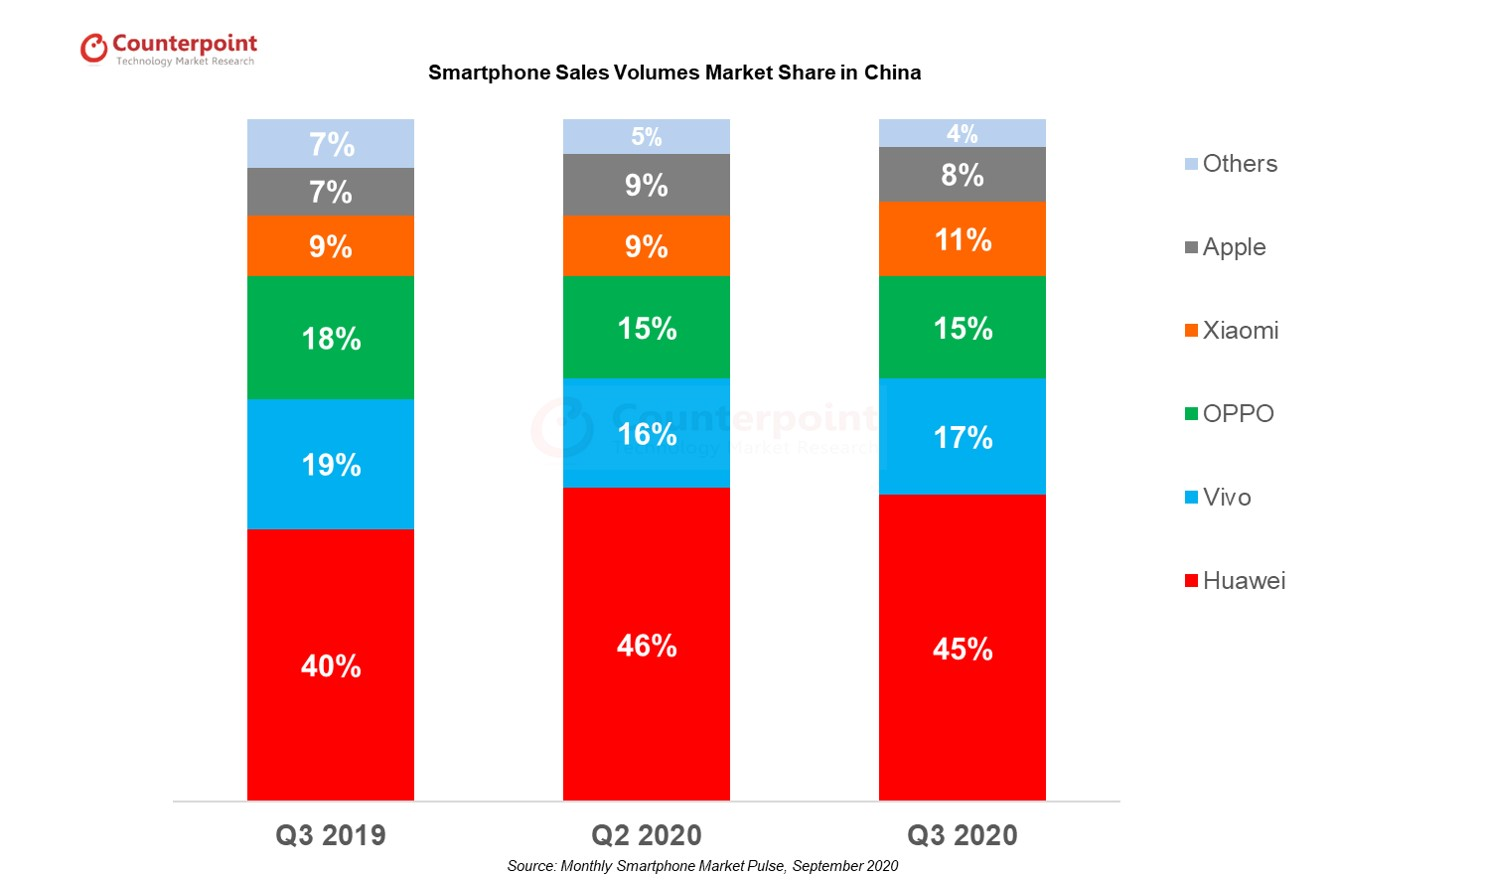 Smartphone OEMs Sales Volume Market Share in China Q3 2020